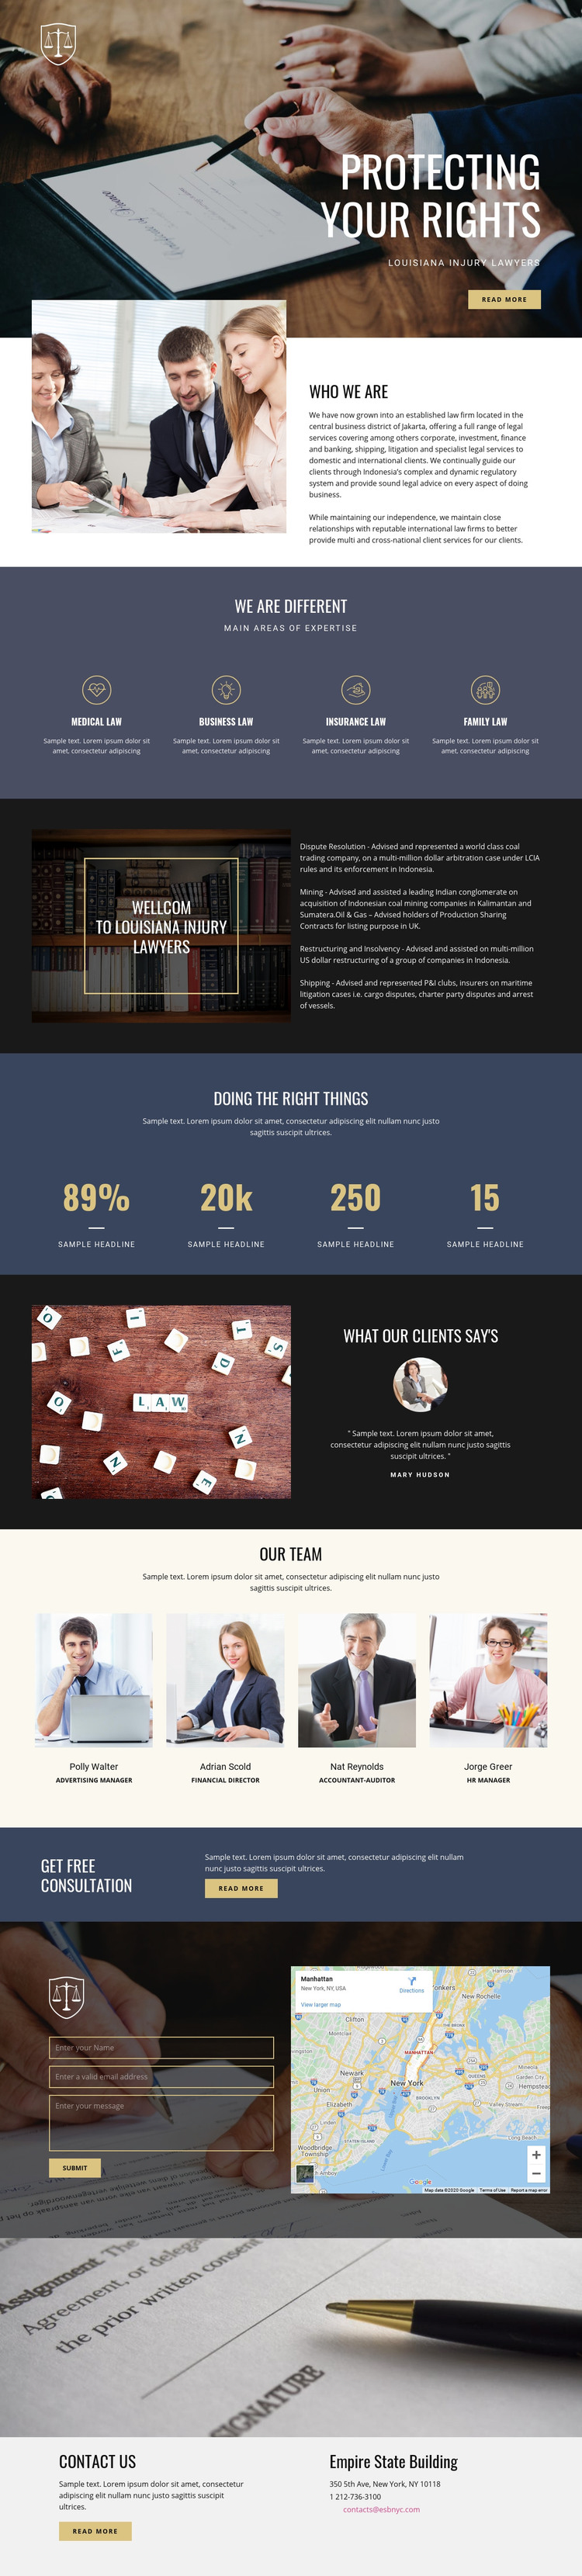 Protecting your rights  Homepage Design